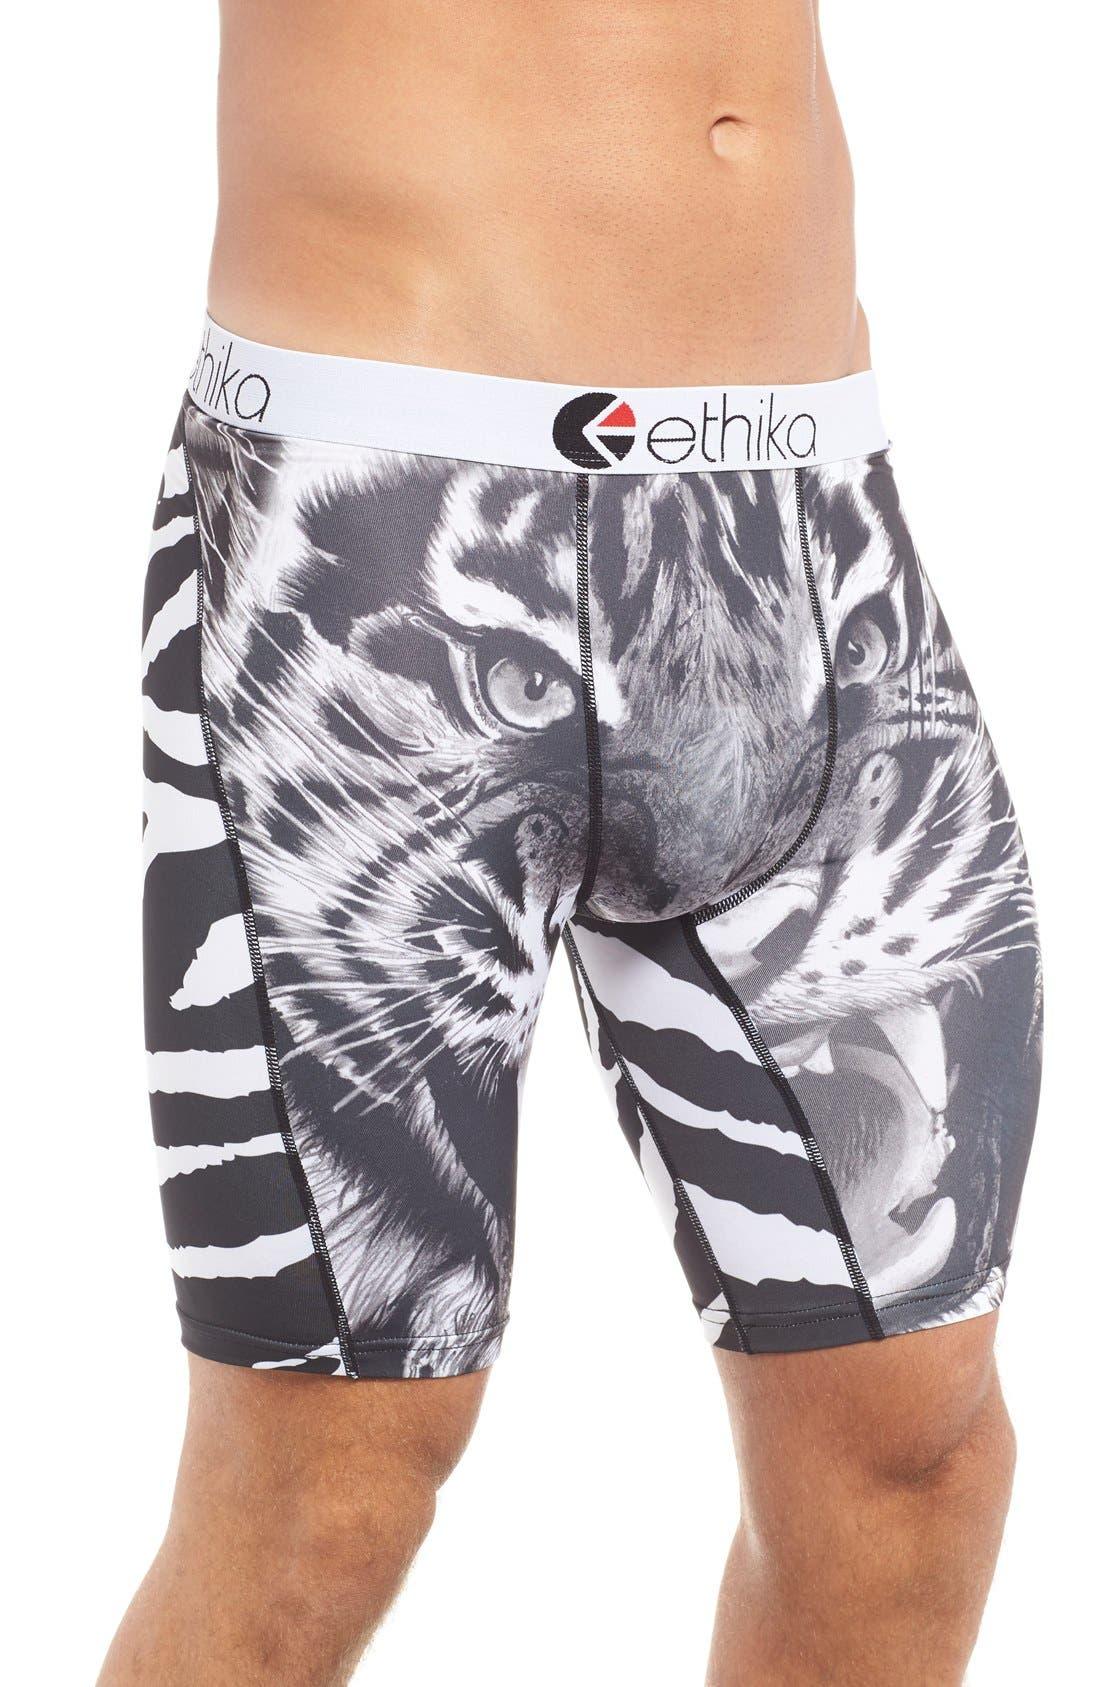 Tiger Face Stretch Boxer Briefs,                             Alternate thumbnail 6, color,                             002